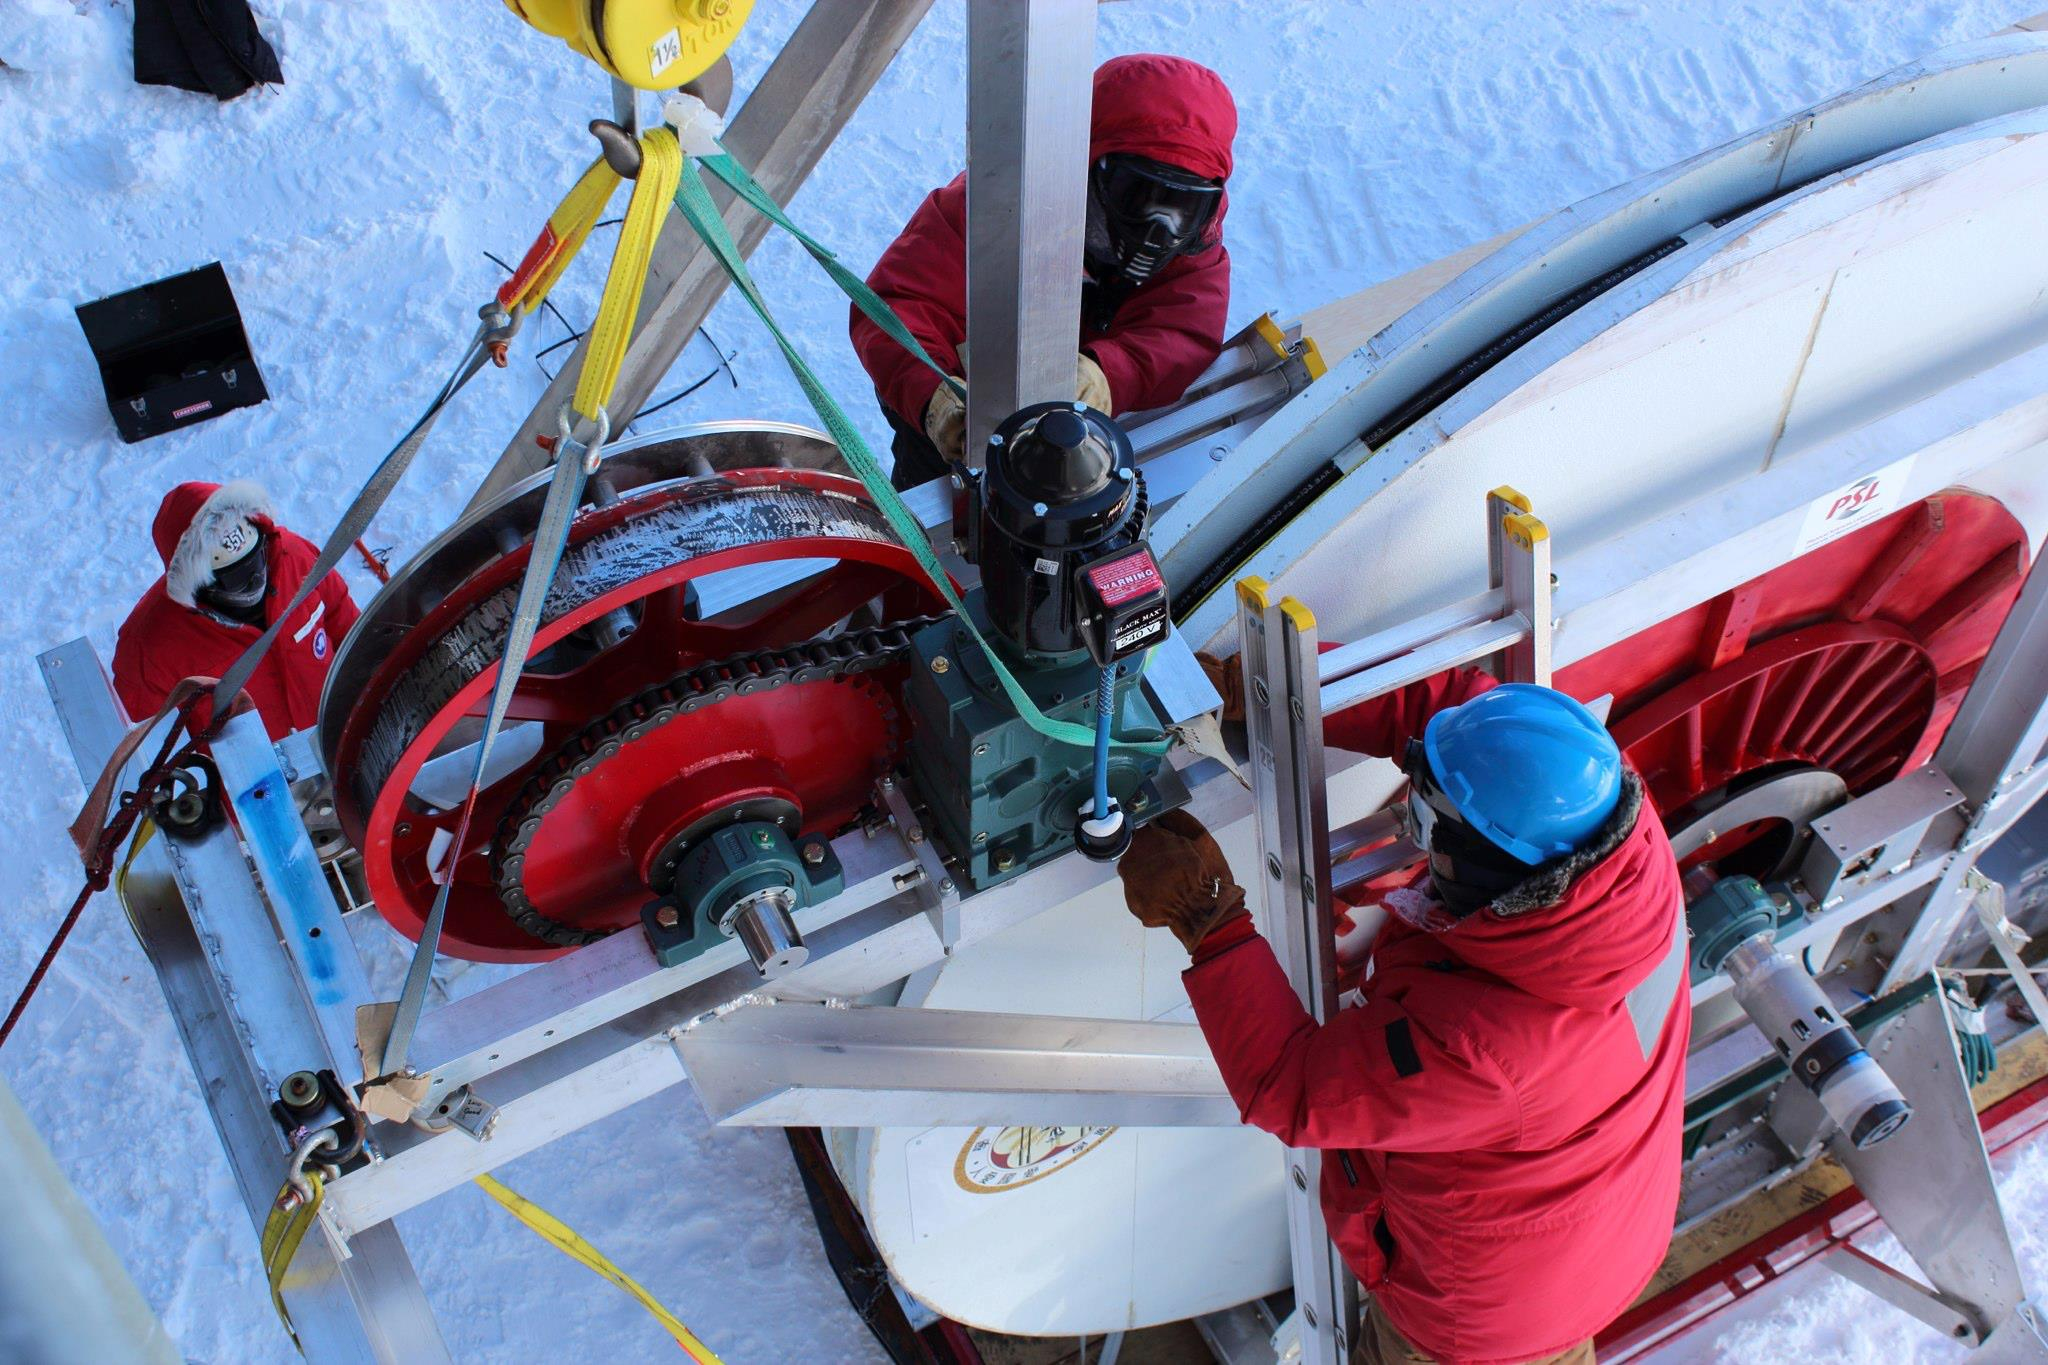 ARA construction at the South Pole, 2012-2013 season. The drill hose reel is being connected.